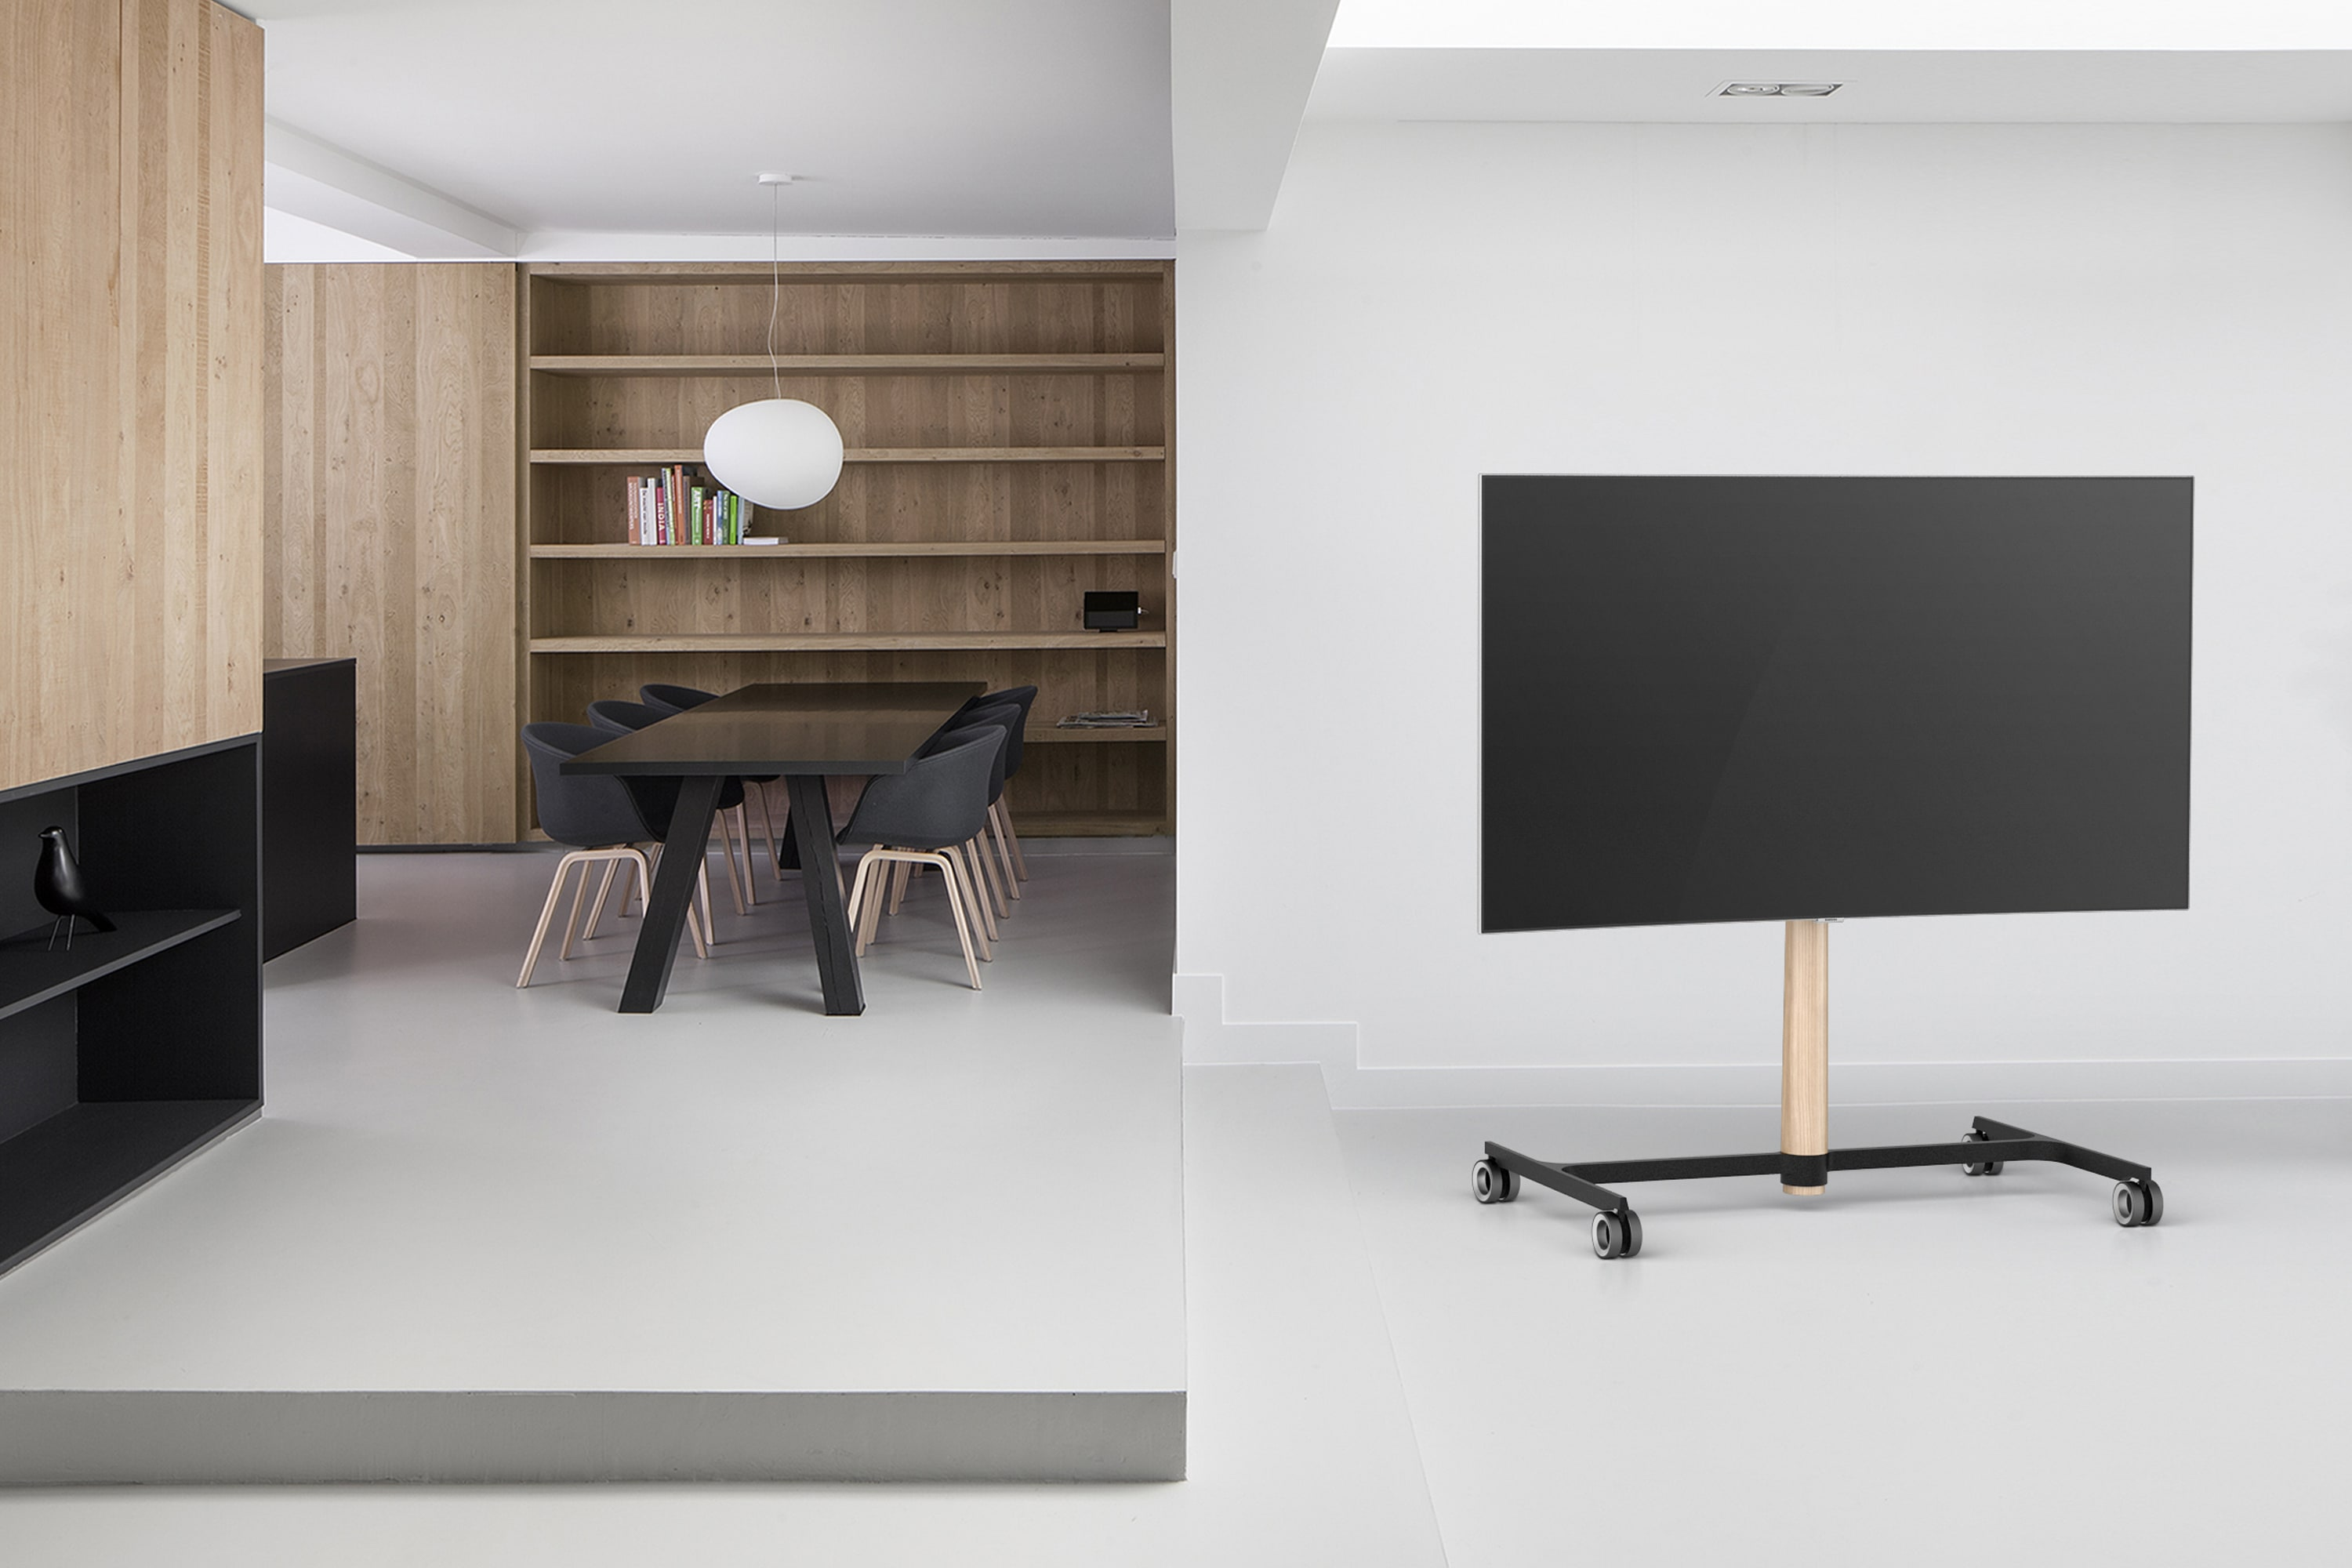 Television stand in context. Light wood leg and a black base in professional setting.